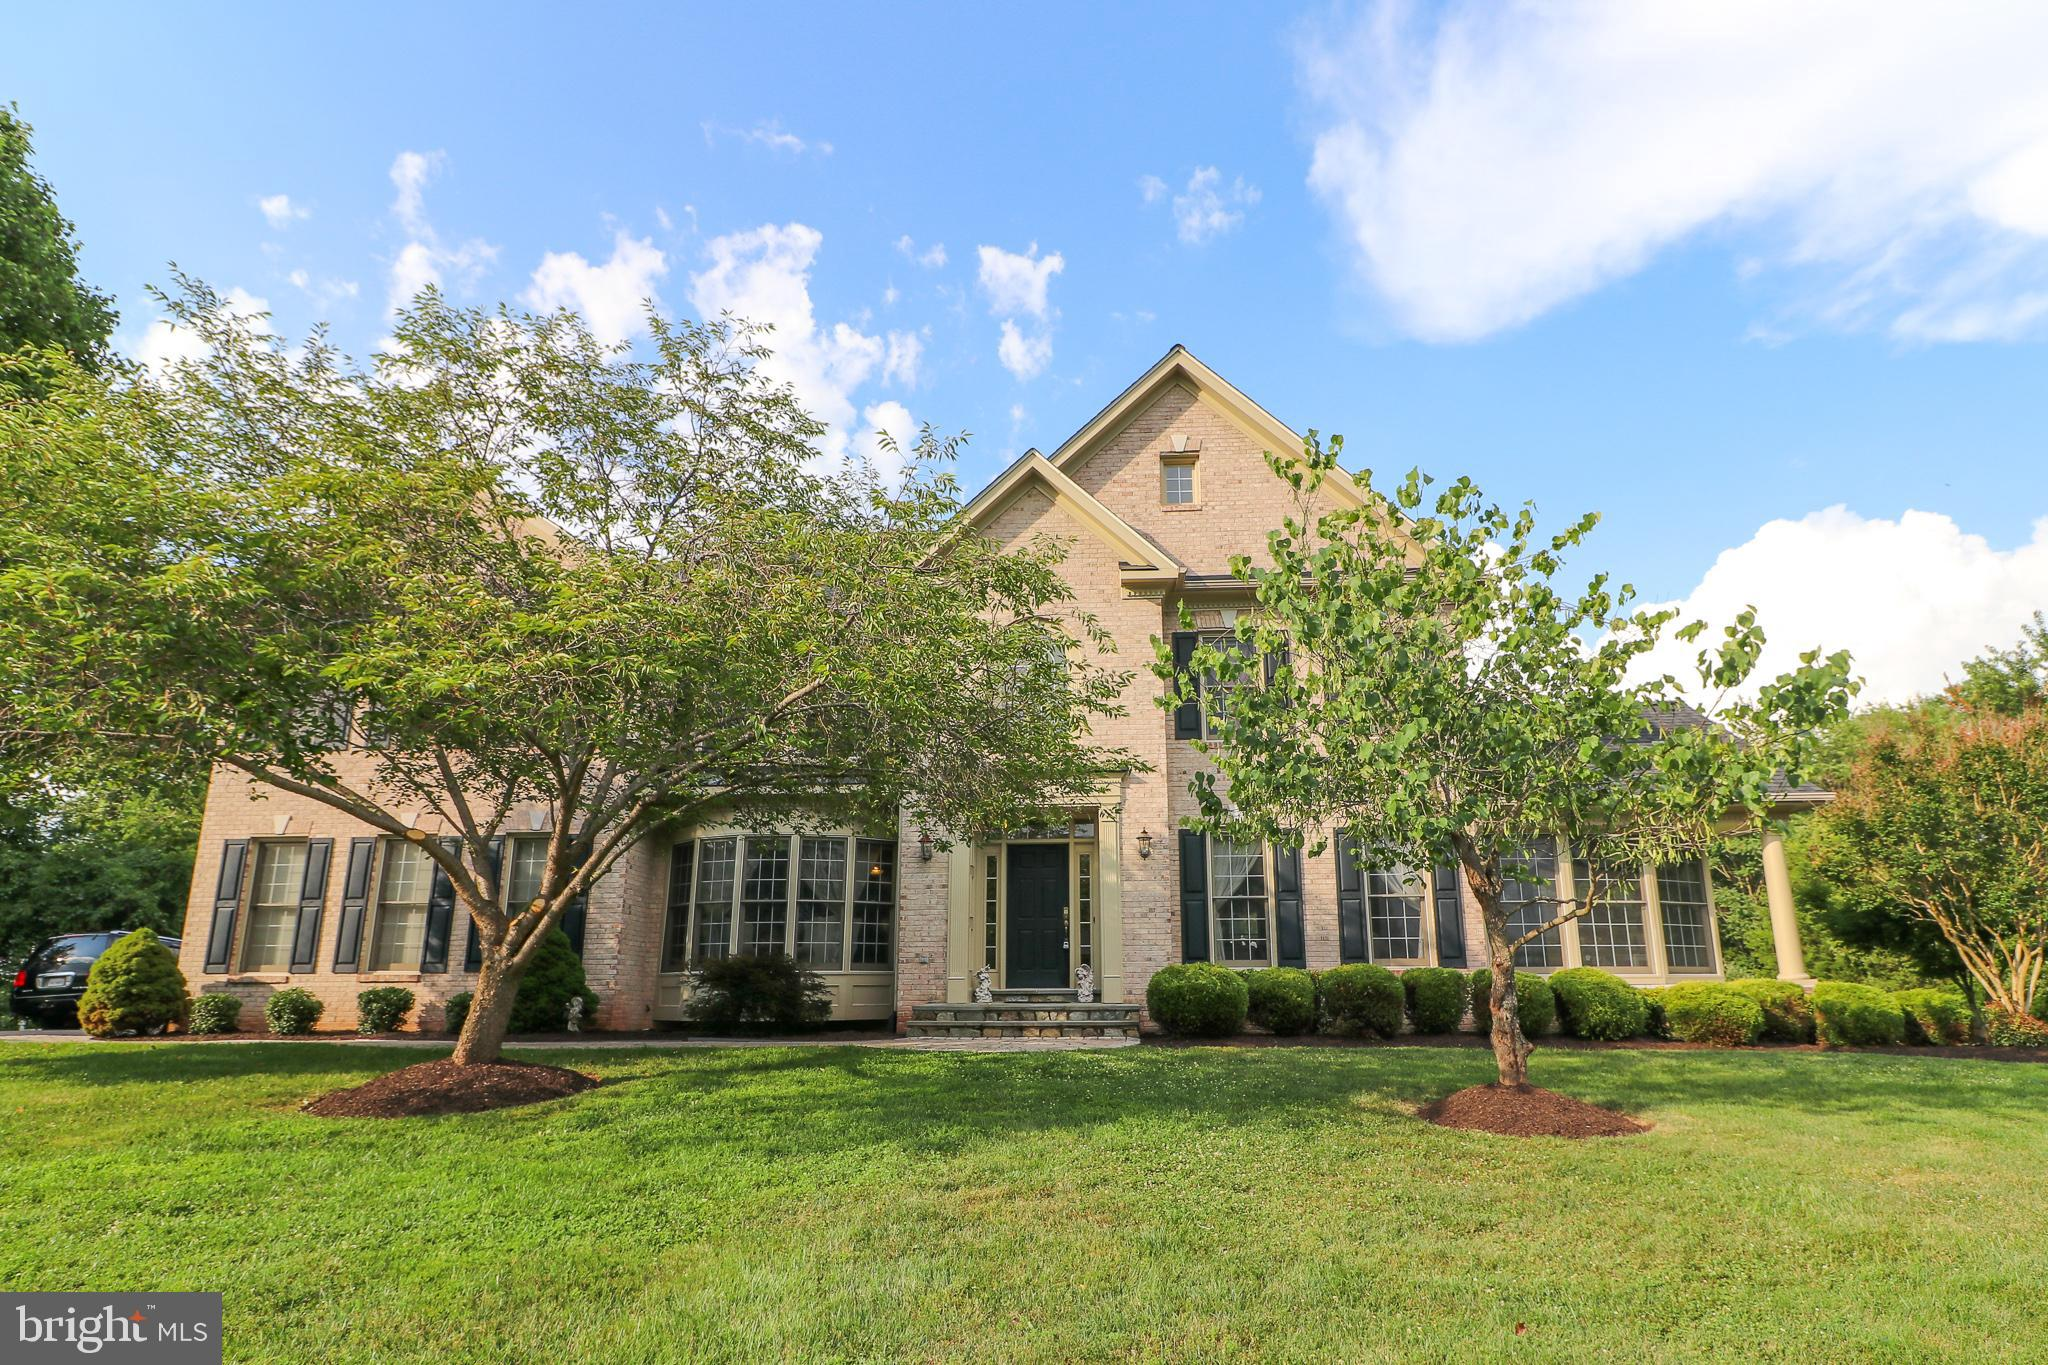 5712 YEWING WAY, GAINESVILLE, VA 20155